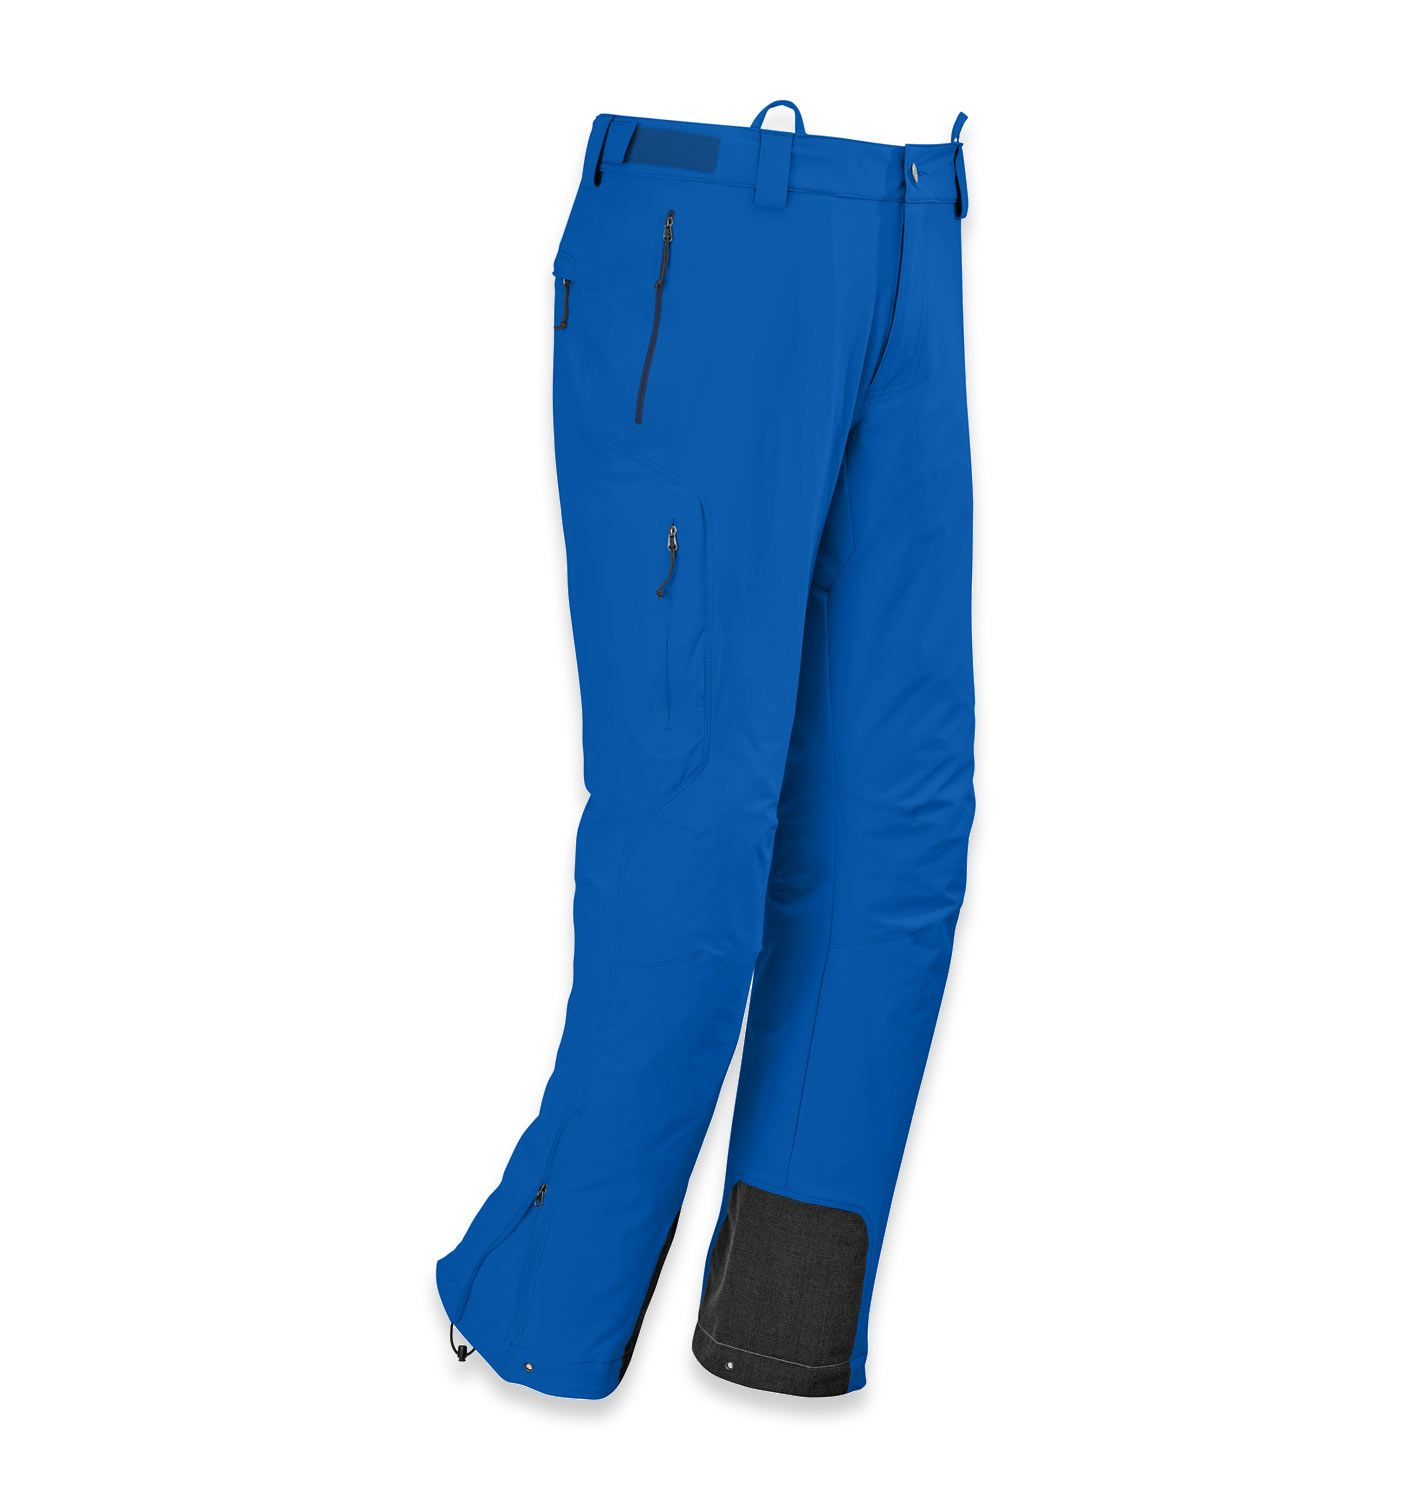 Men's Cirque Pants™ | Outdoor Research: Technical soft shell pants for alpine conditions; weather-resistant and breathable for high-energy climbing and ski touring.